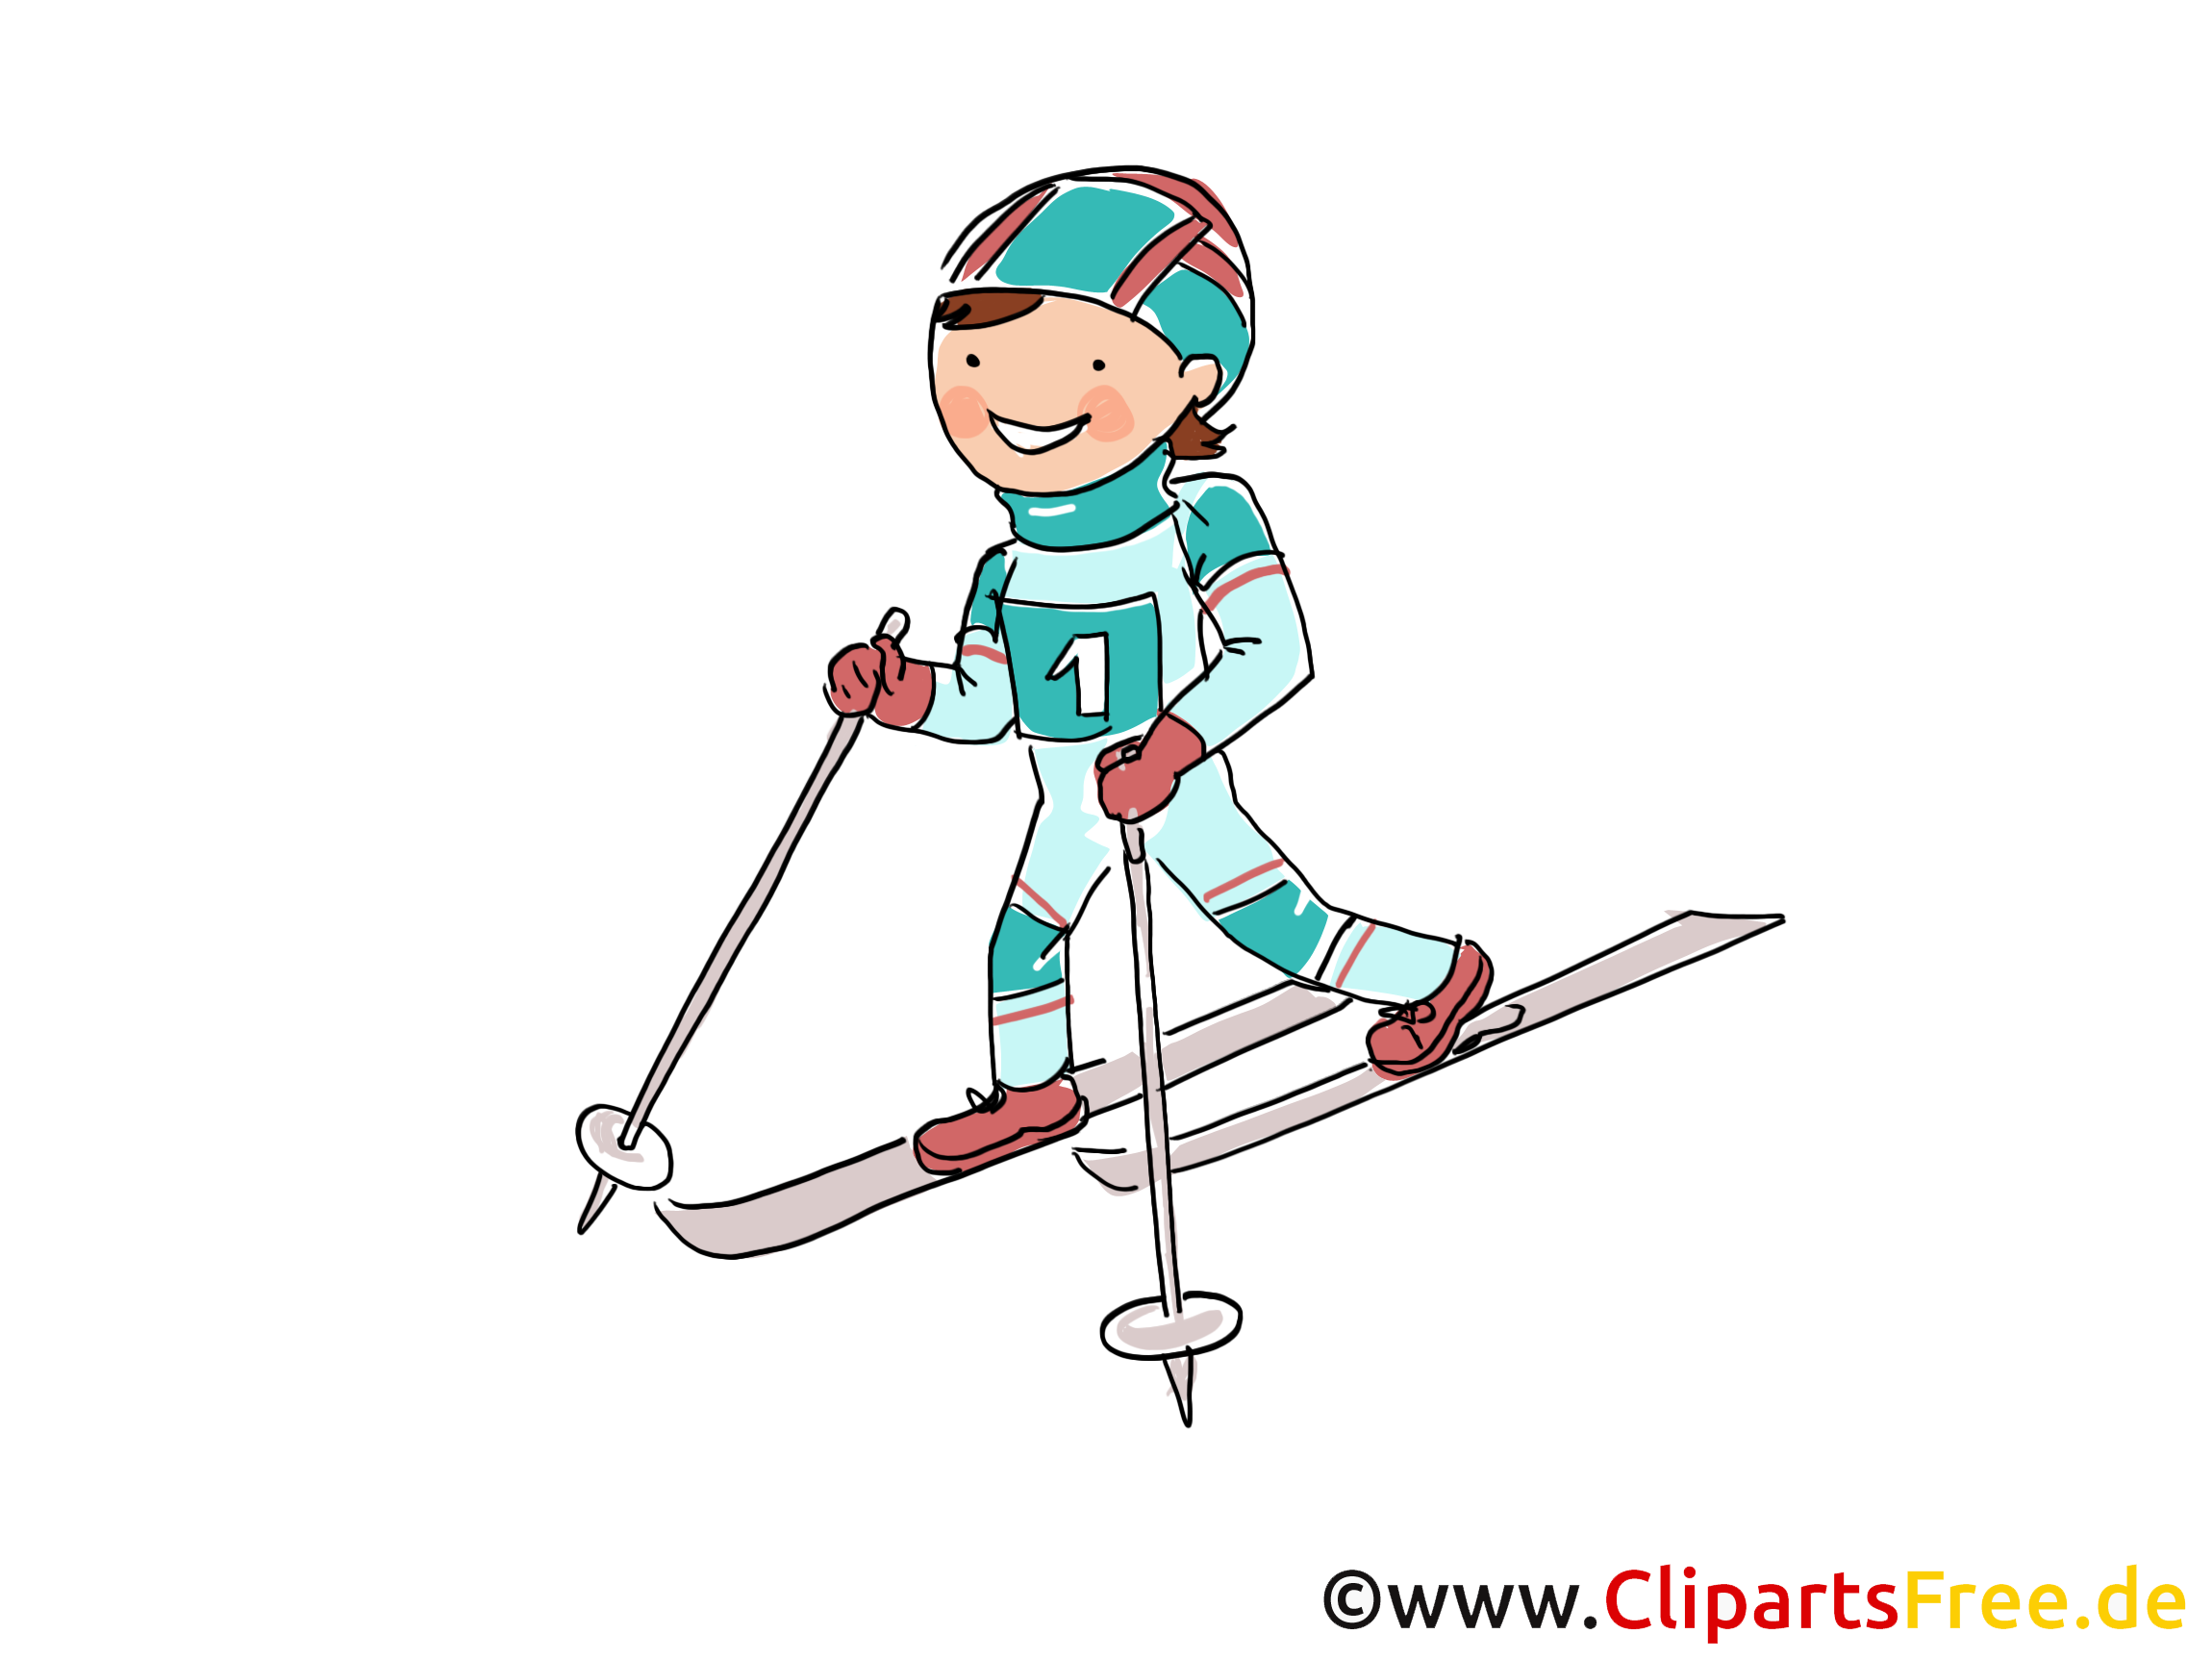 Ski Bild, Sport Cliparts, Comic, Cartoon, Image gratis